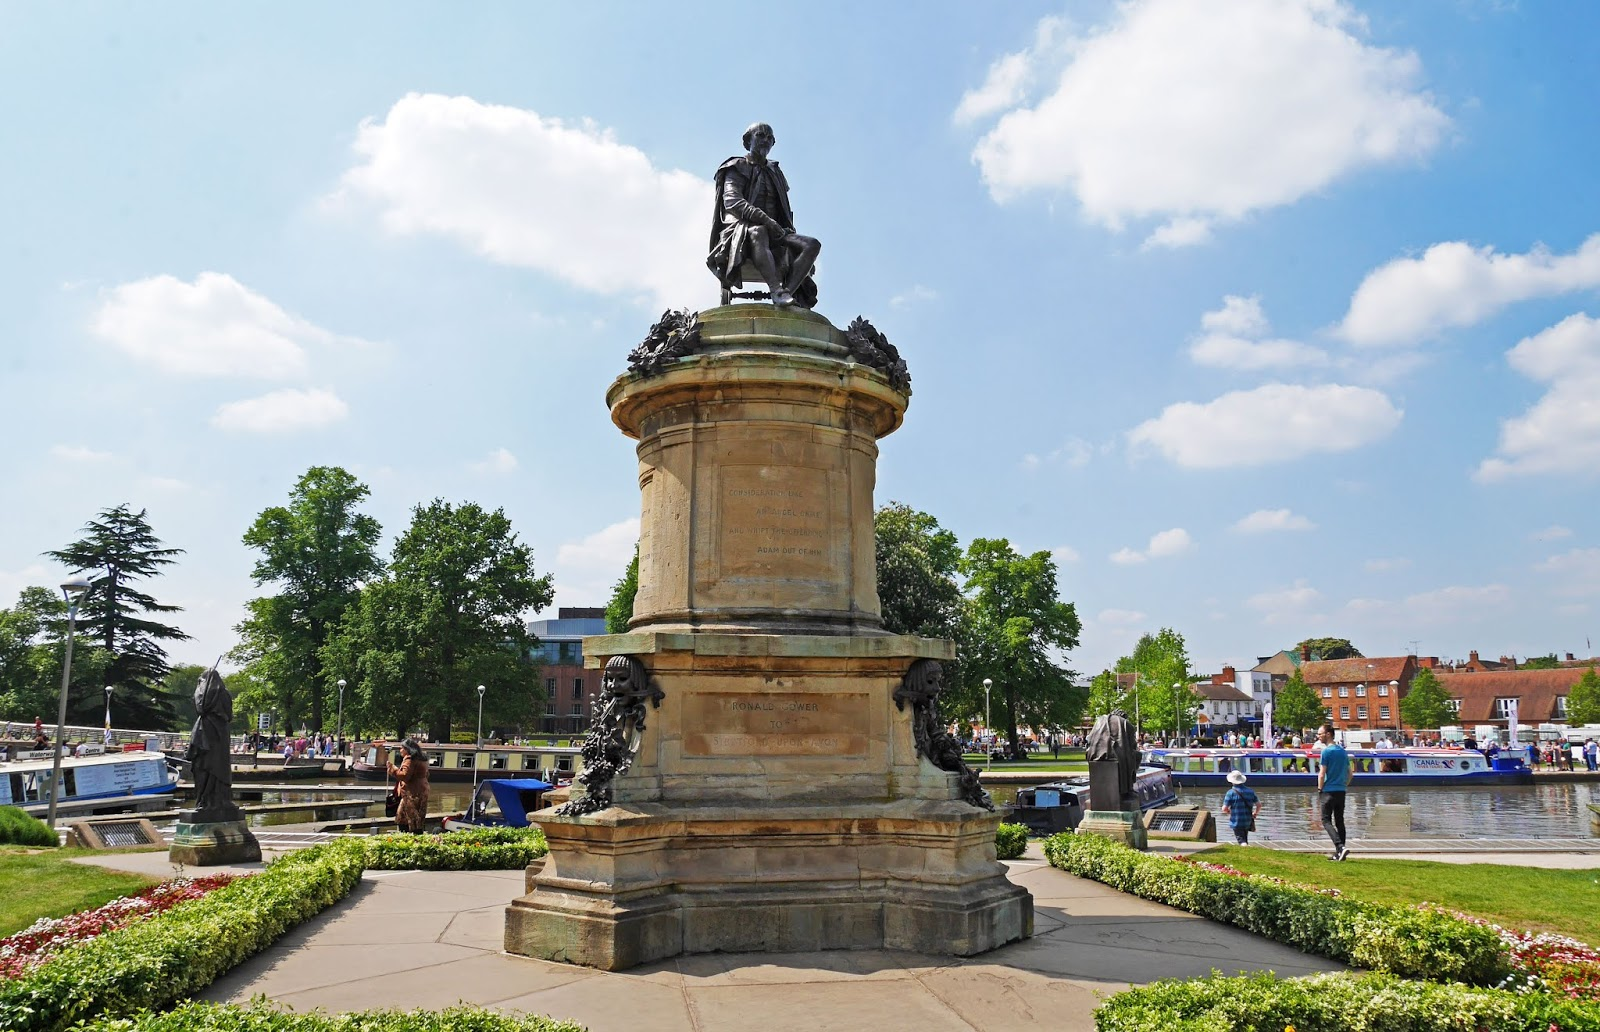 Shakespeare's Memorial in Bancroft Gardens, Stratford-upon-Avon